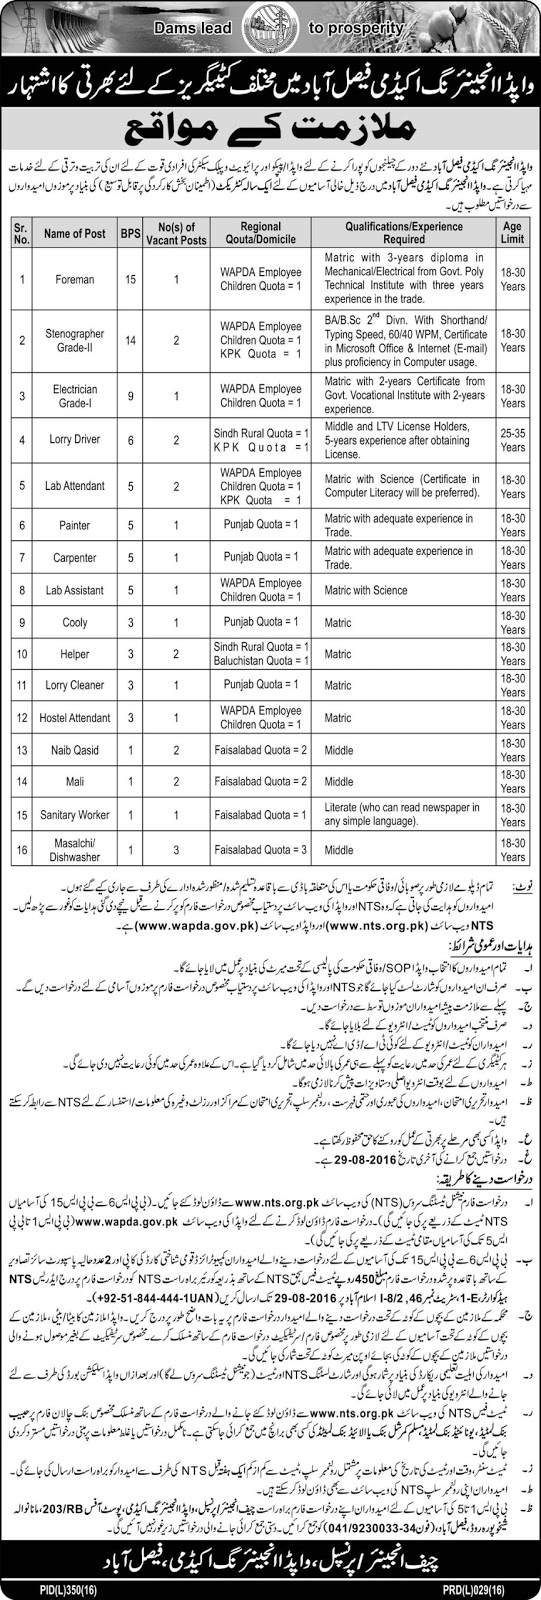 Government Jobs in WAPDA Jobs in Pakistan 2016